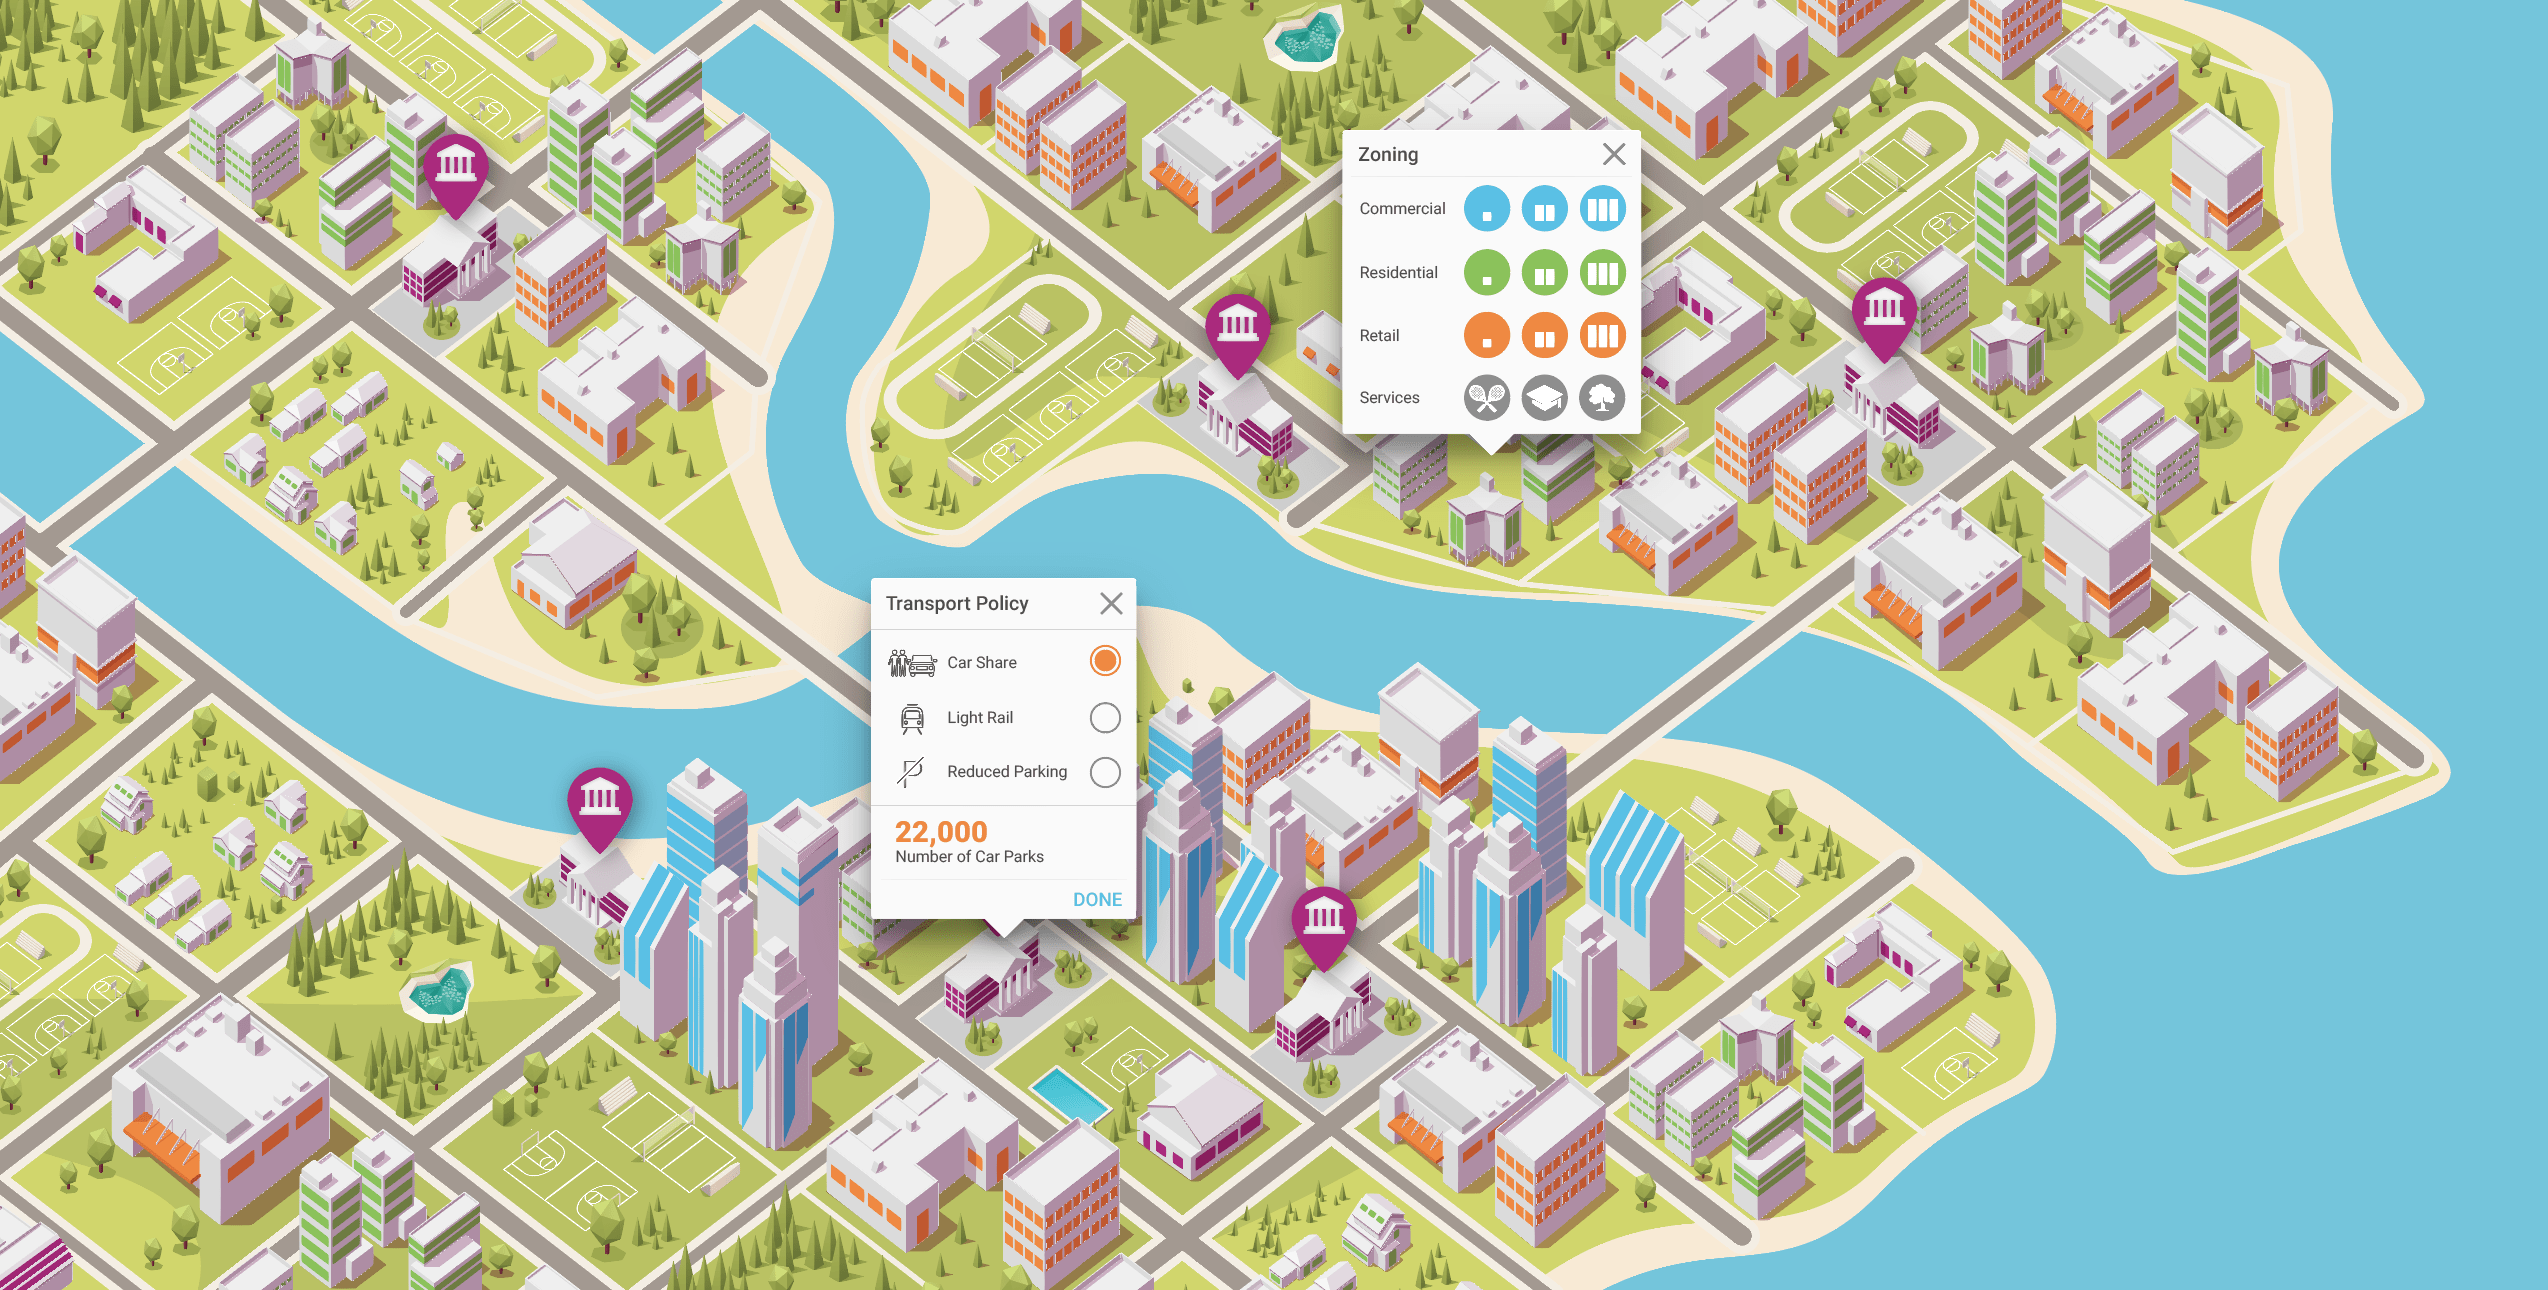 Animated map of interactive city